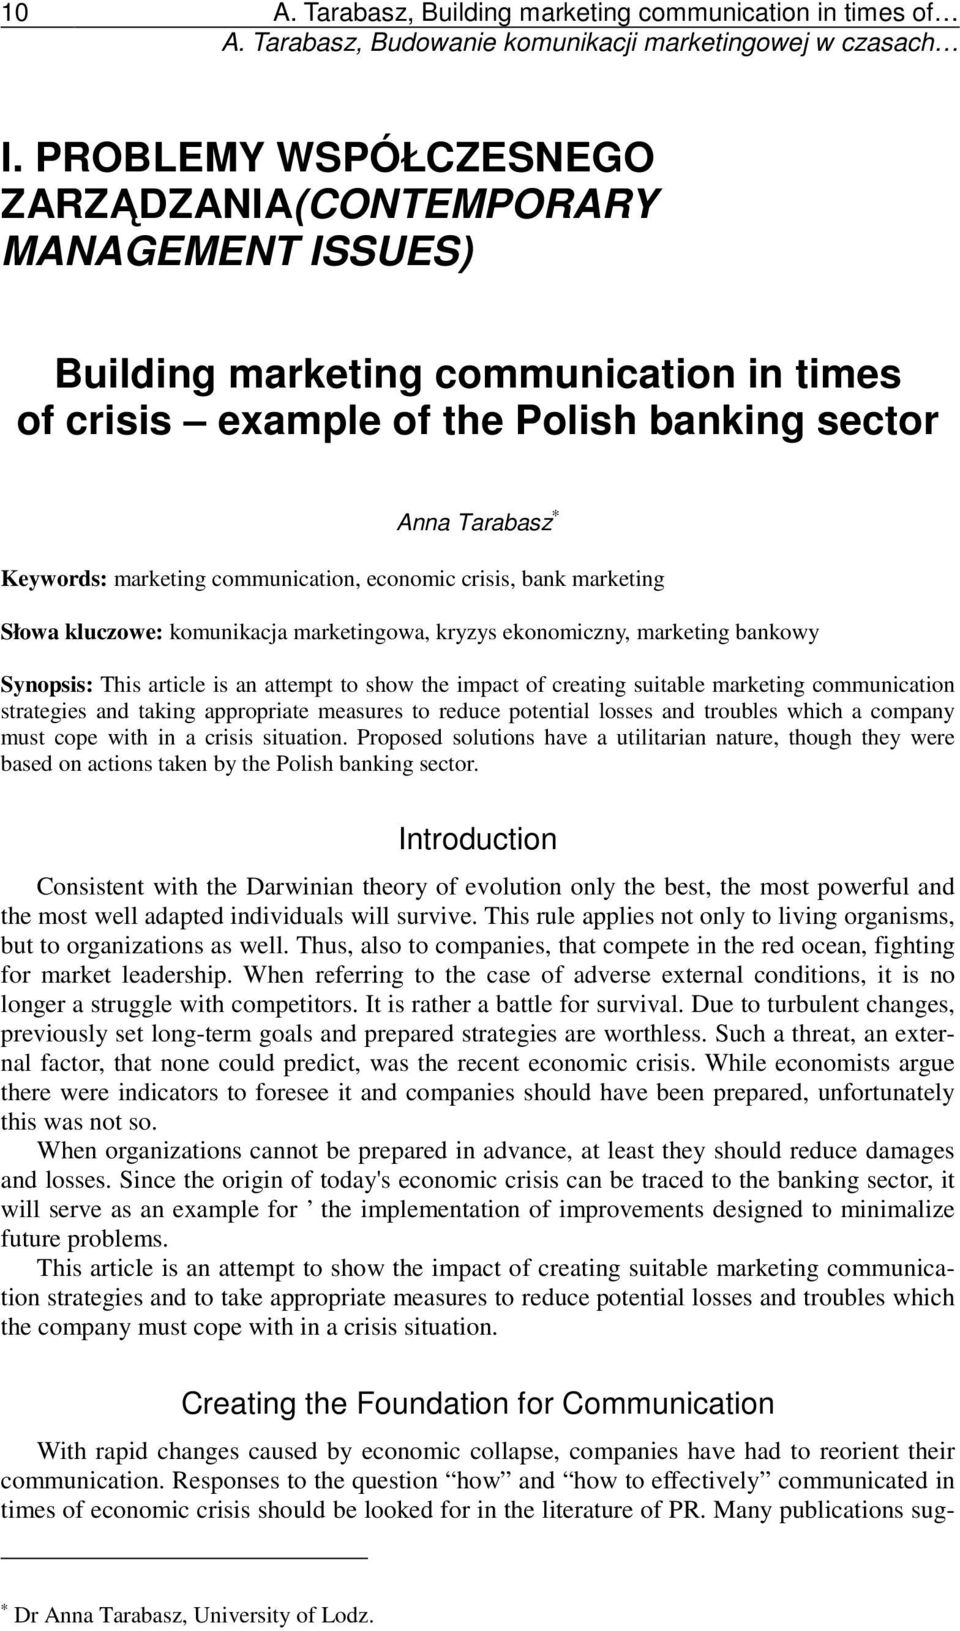 communication, economic crisis, bank marketing Słowa kluczowe: komunikacja marketingowa, kryzys ekonomiczny, marketing bankowy Synopsis: This article is an attempt to show the impact of creating